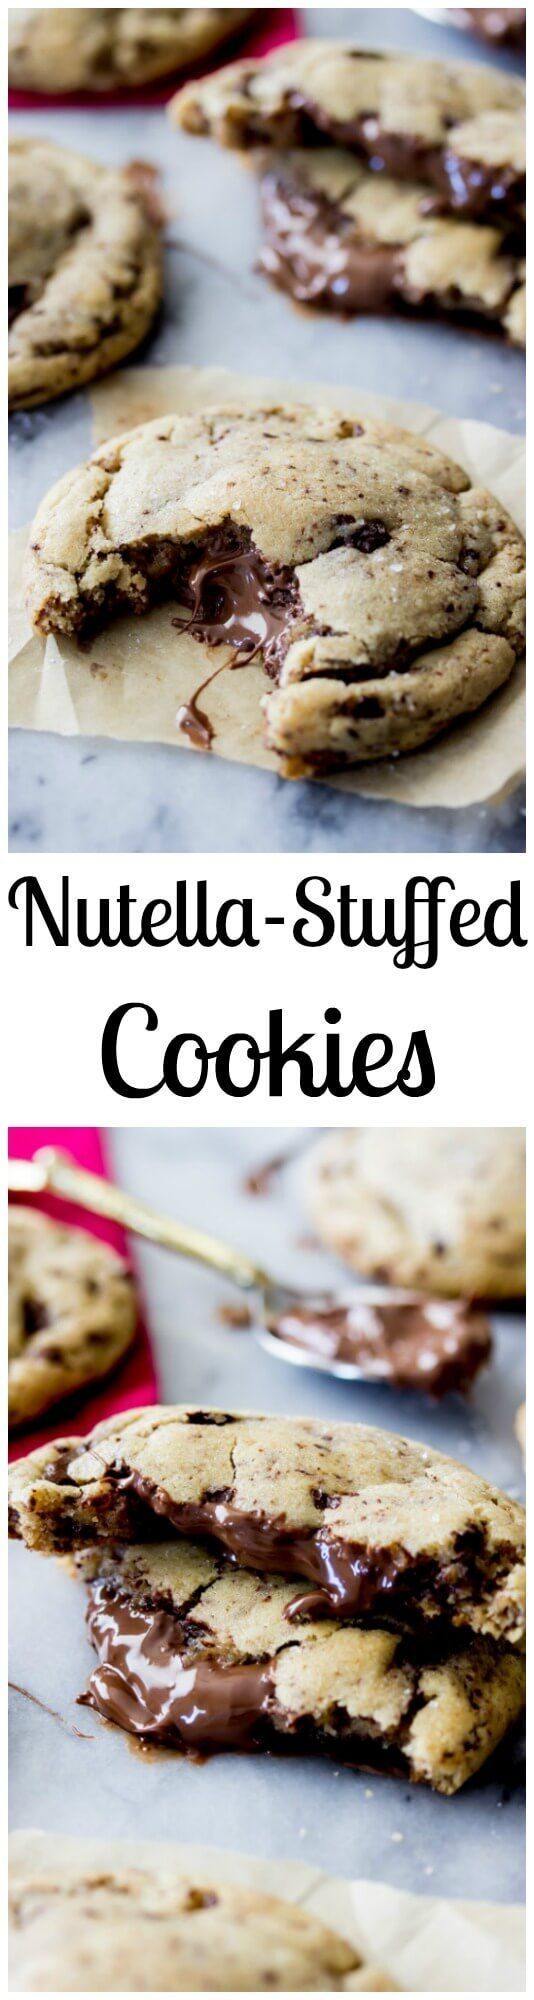 Nutella Stuffed Cookies - made with brown butter and sprinkled with sea salt! || Sugar Spun Run via /sugarspunrun/